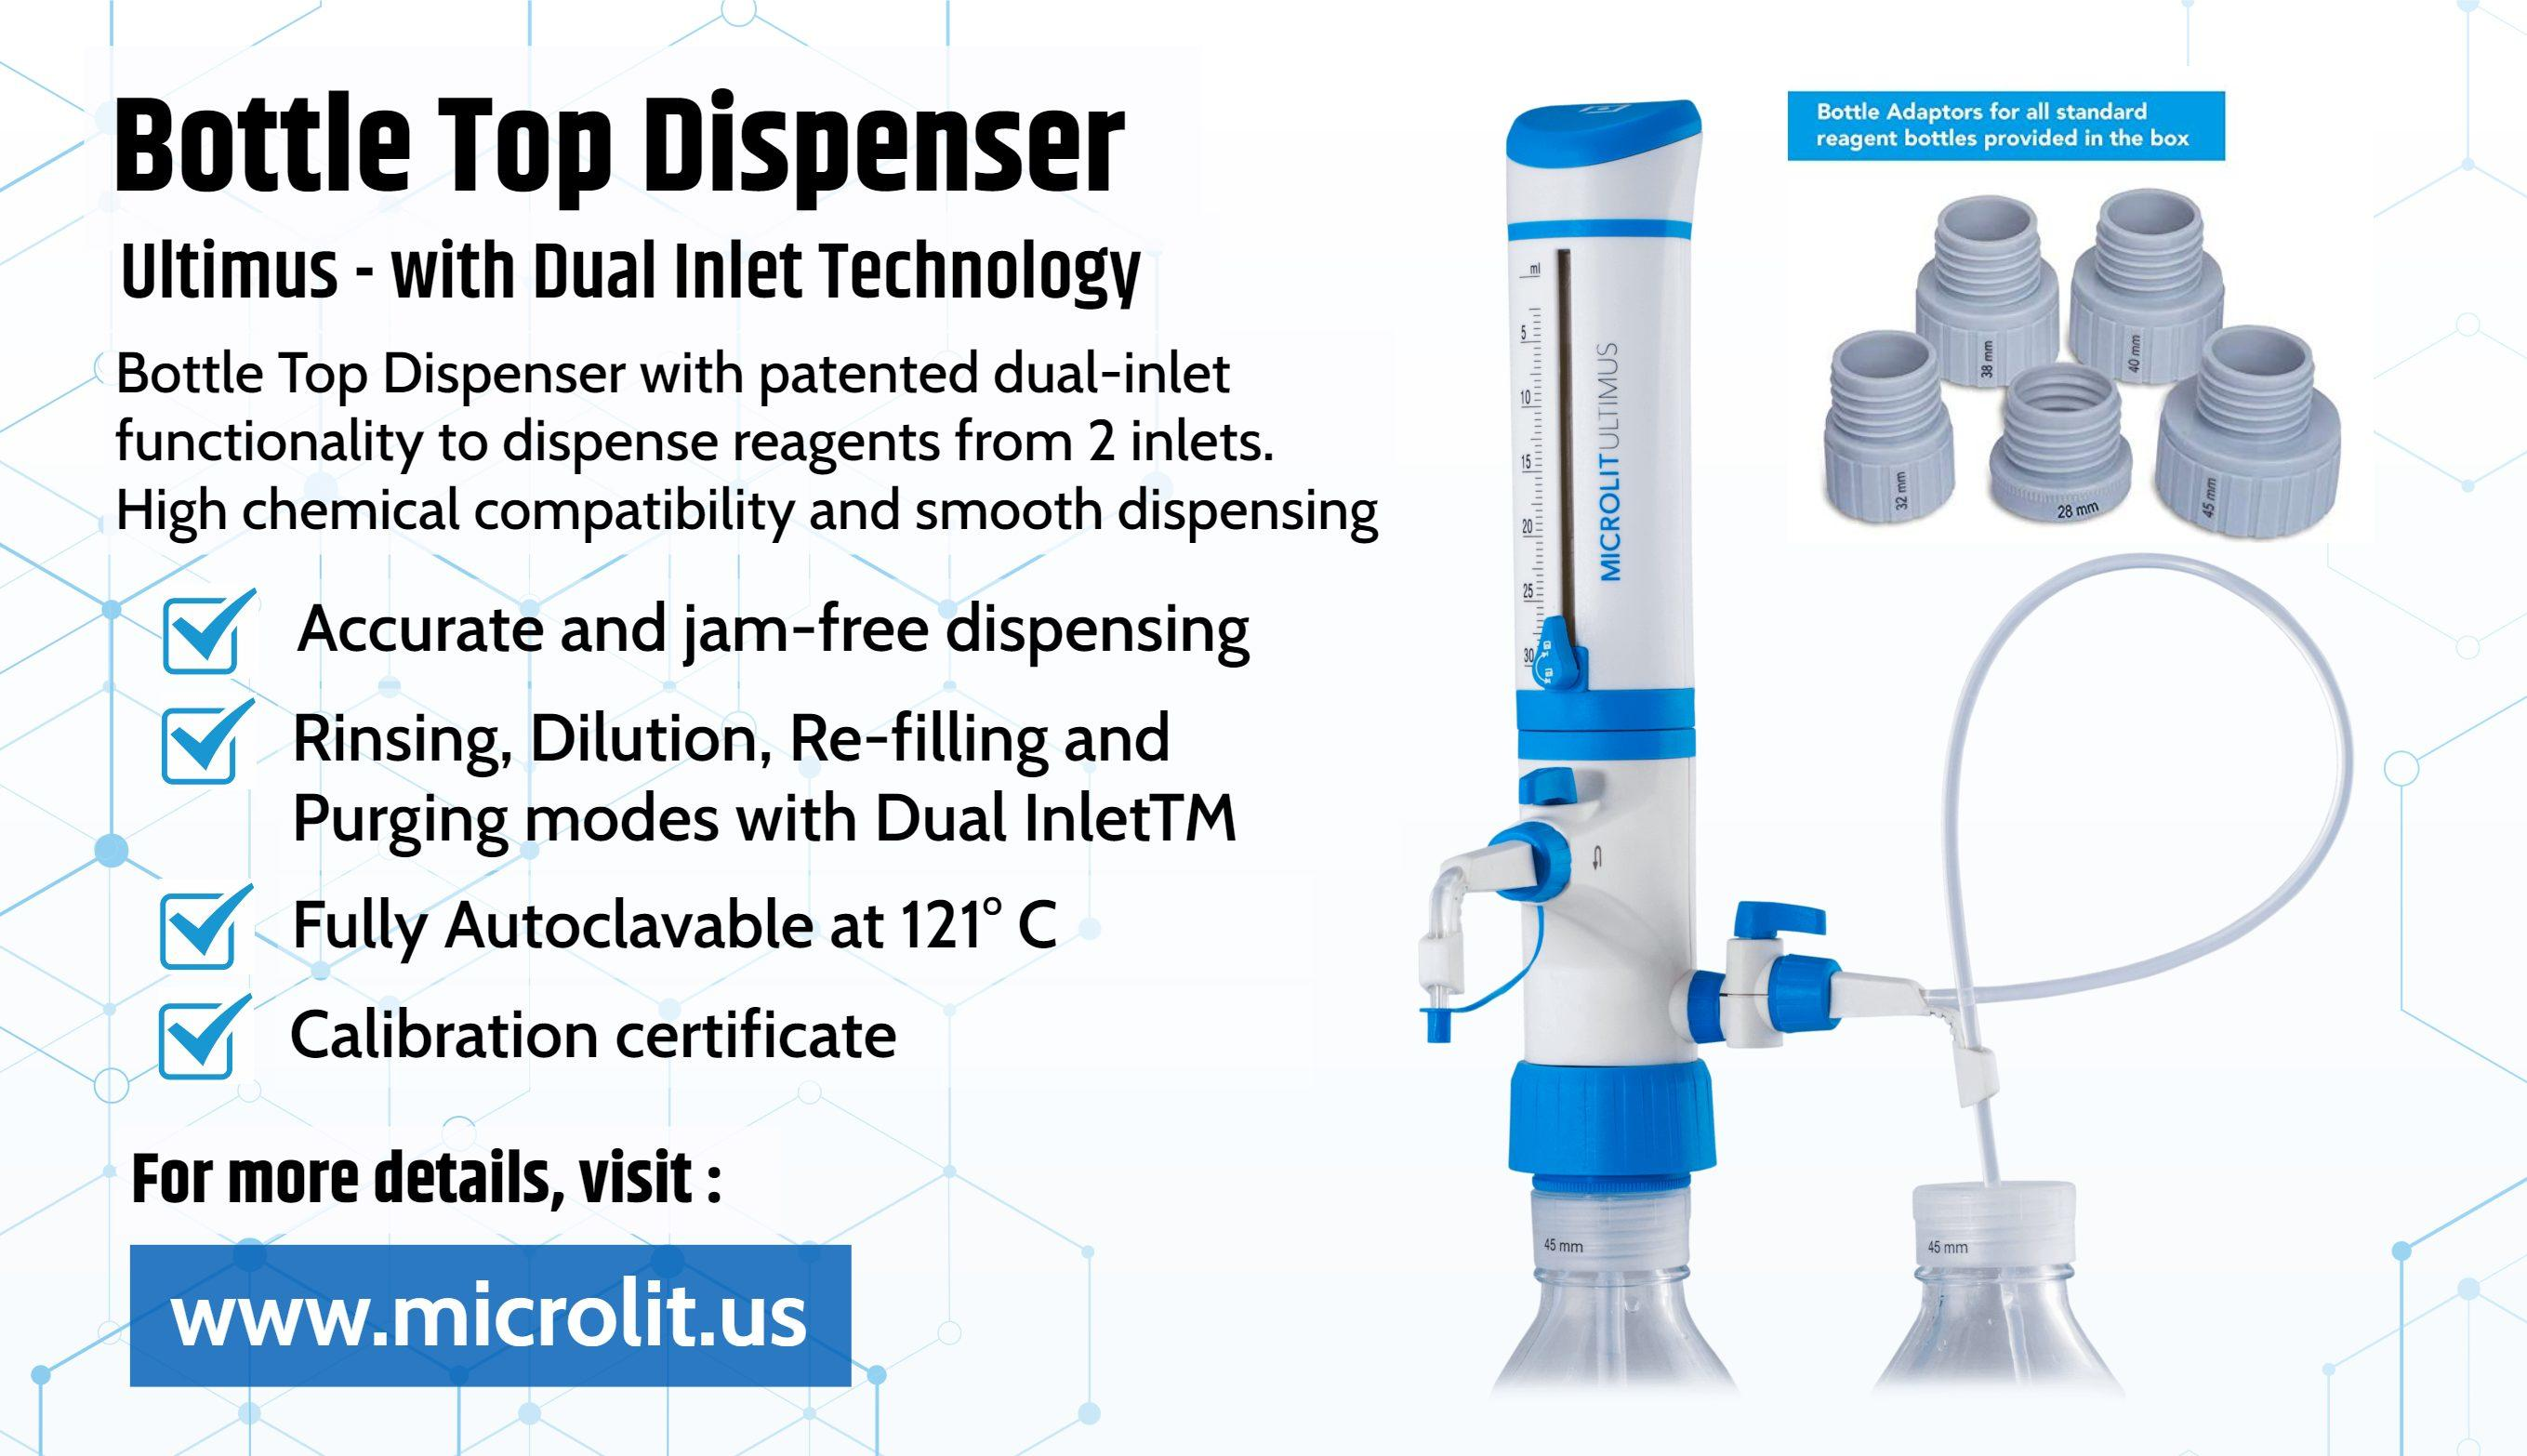 Image - Microlit offers the best #BottleTopDispenser with dual-inlet functionality to dispense reagents from 2 inlets...